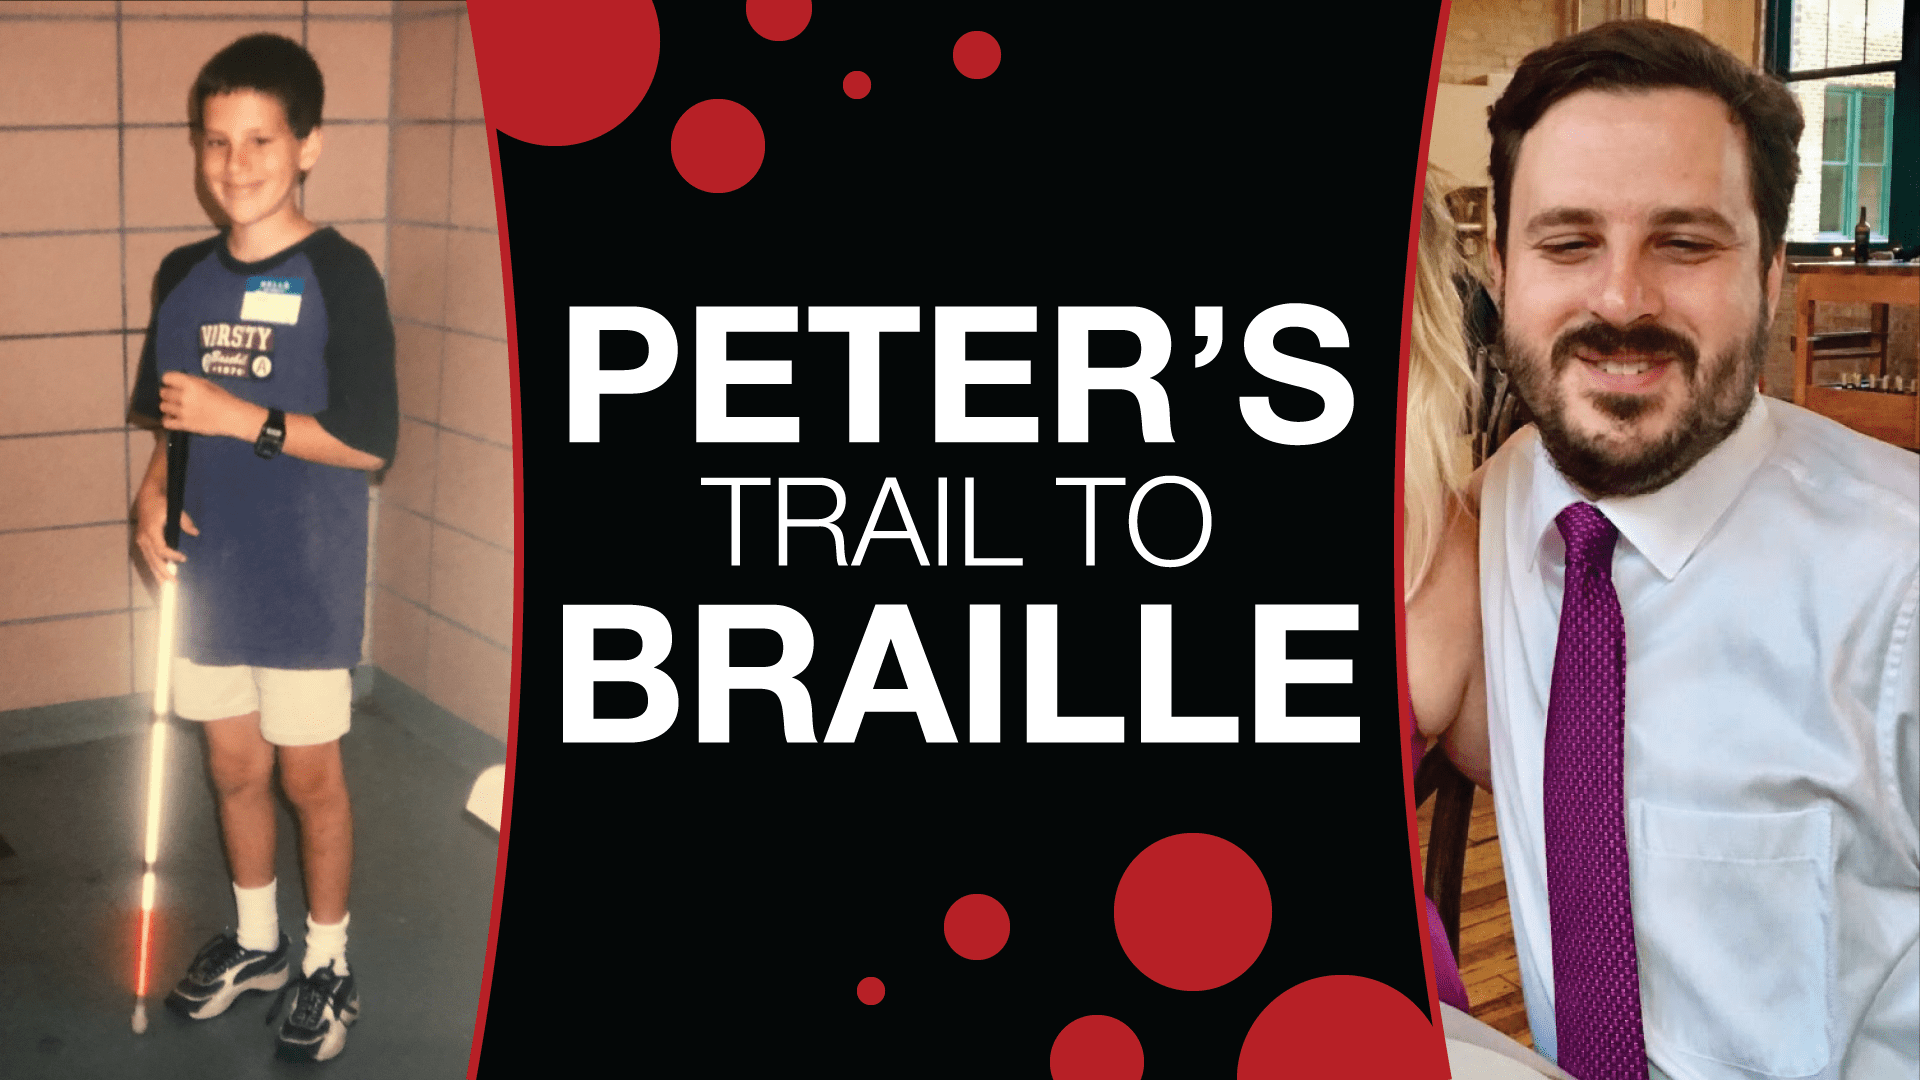 "a photo of Peter as a child on the left, a photo of peter now as an adult on the right. In the middle is text that reads ""Peter's Trail to Braille"" with red braille like dots surrounding it"